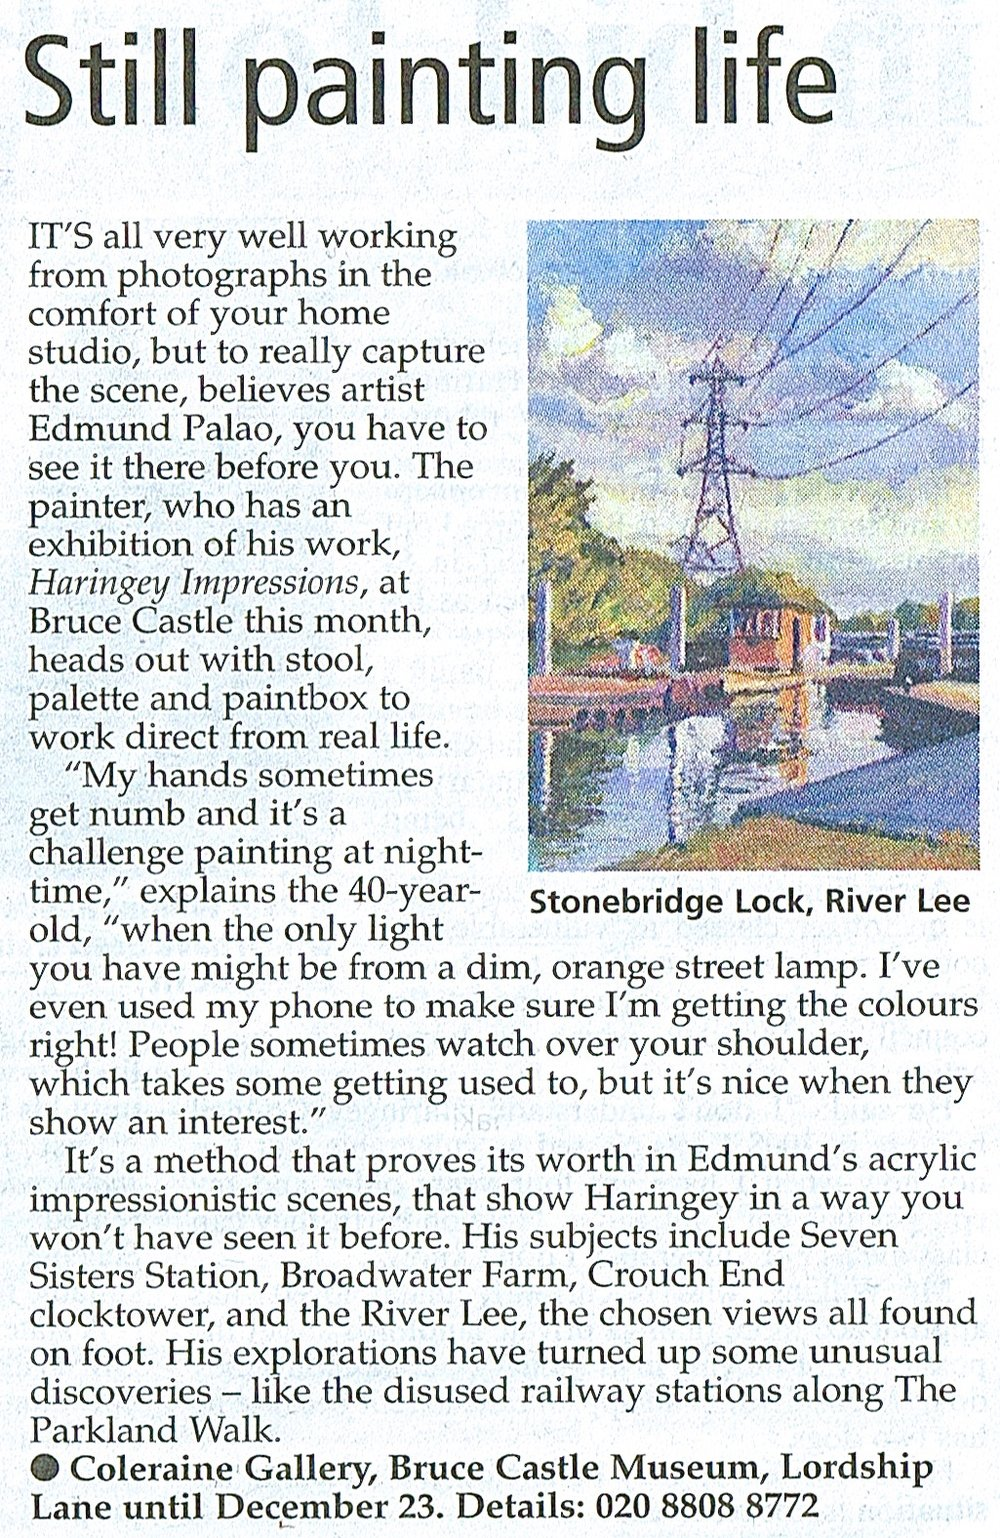 October 2012 - Haringey Independent newspaper article by journalist George Nott featuring my solo exhibition Haringey Impressions at Bruce Castle Museum, London, where two of my paintings are in their permanent collection.